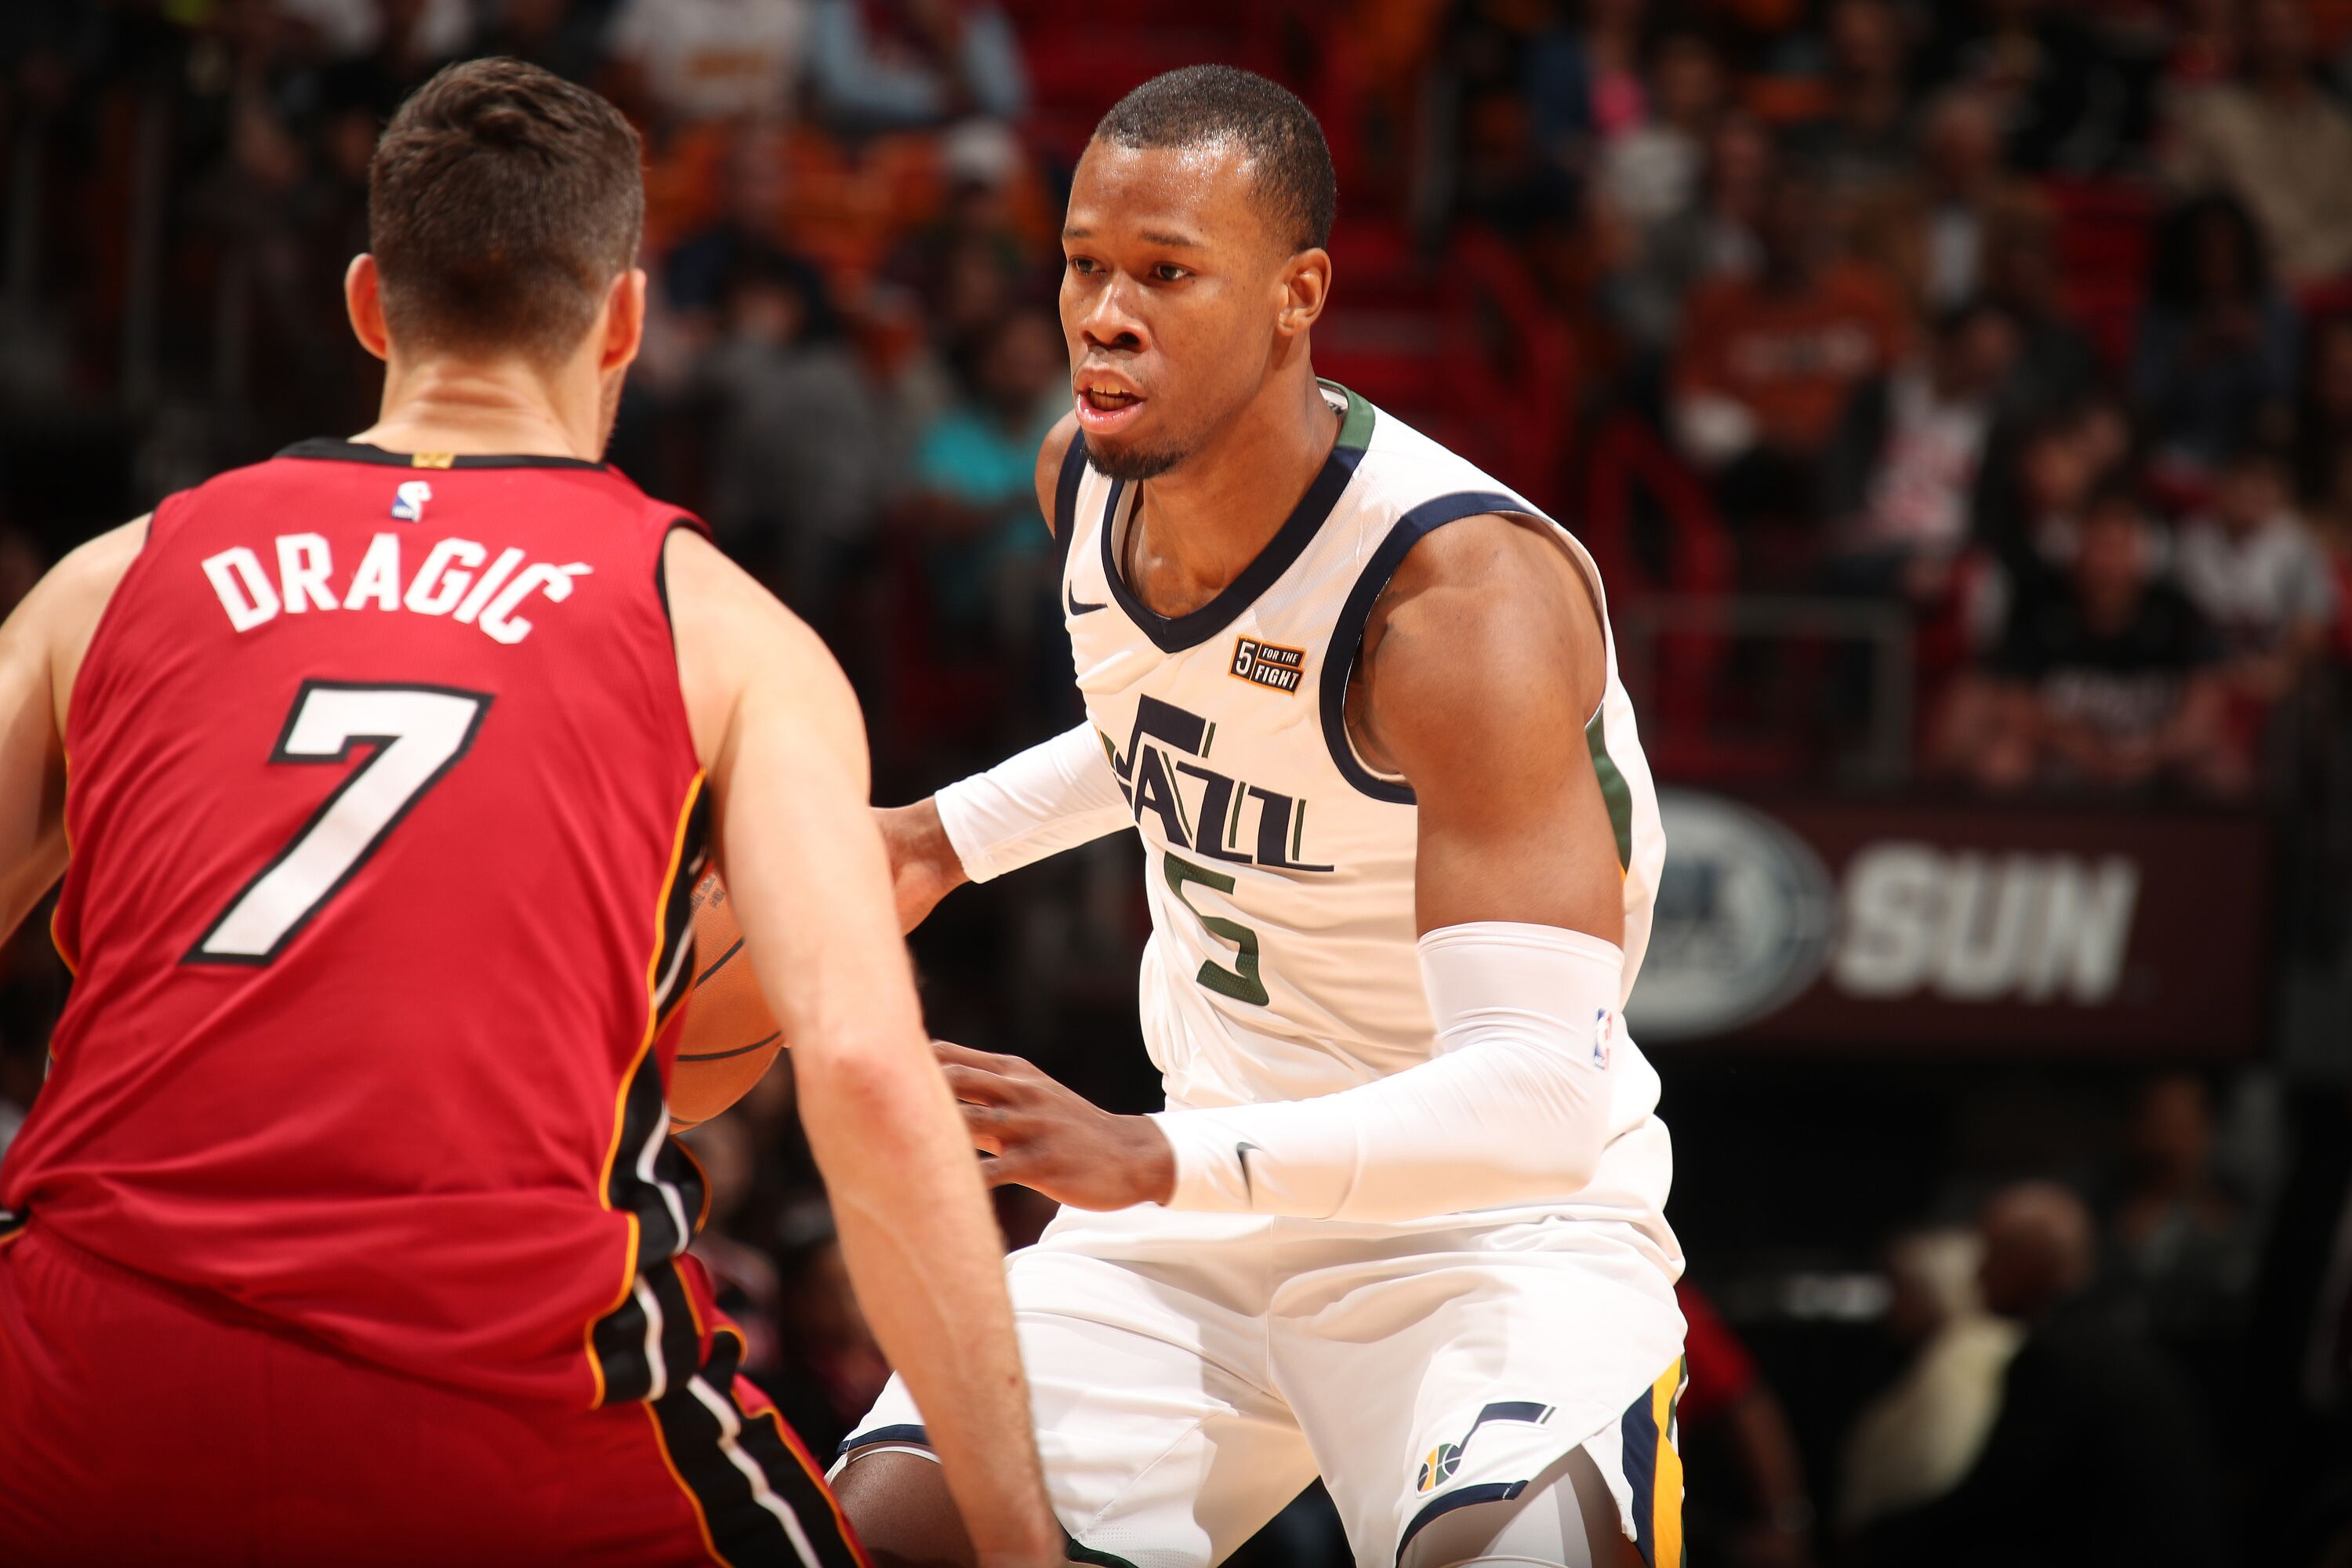 902309402-utah-jazz-v-miami-heat.jpg